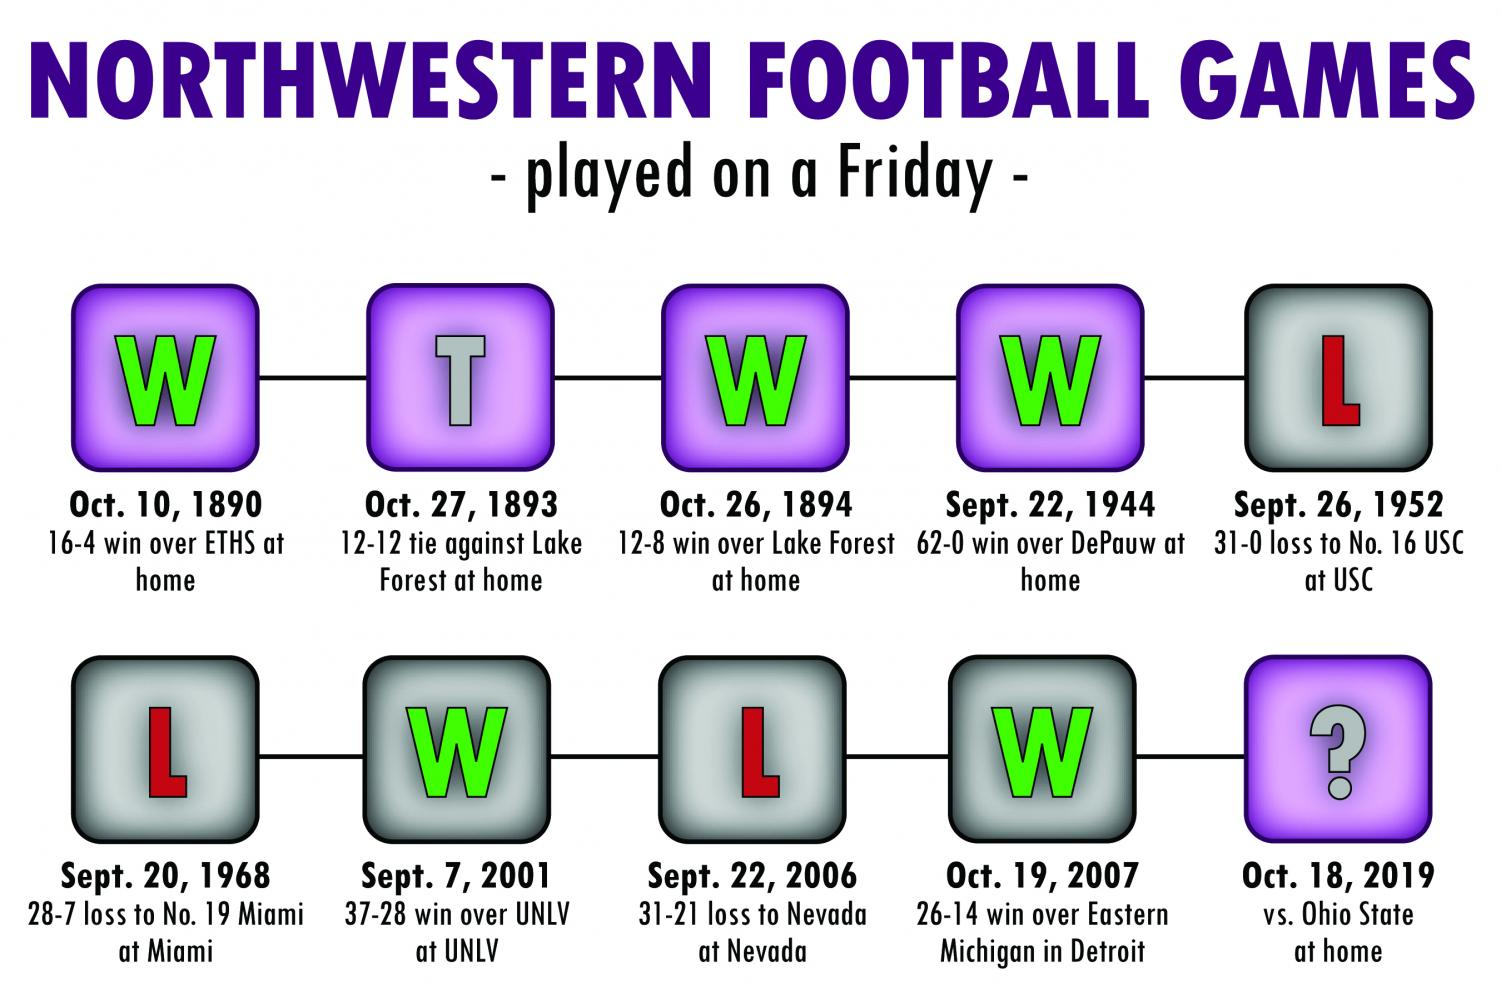 Ten Northwestern games played on a Friday. According to The Daily's research, these are the only non-bowl games the Wildcats have played on a Friday.